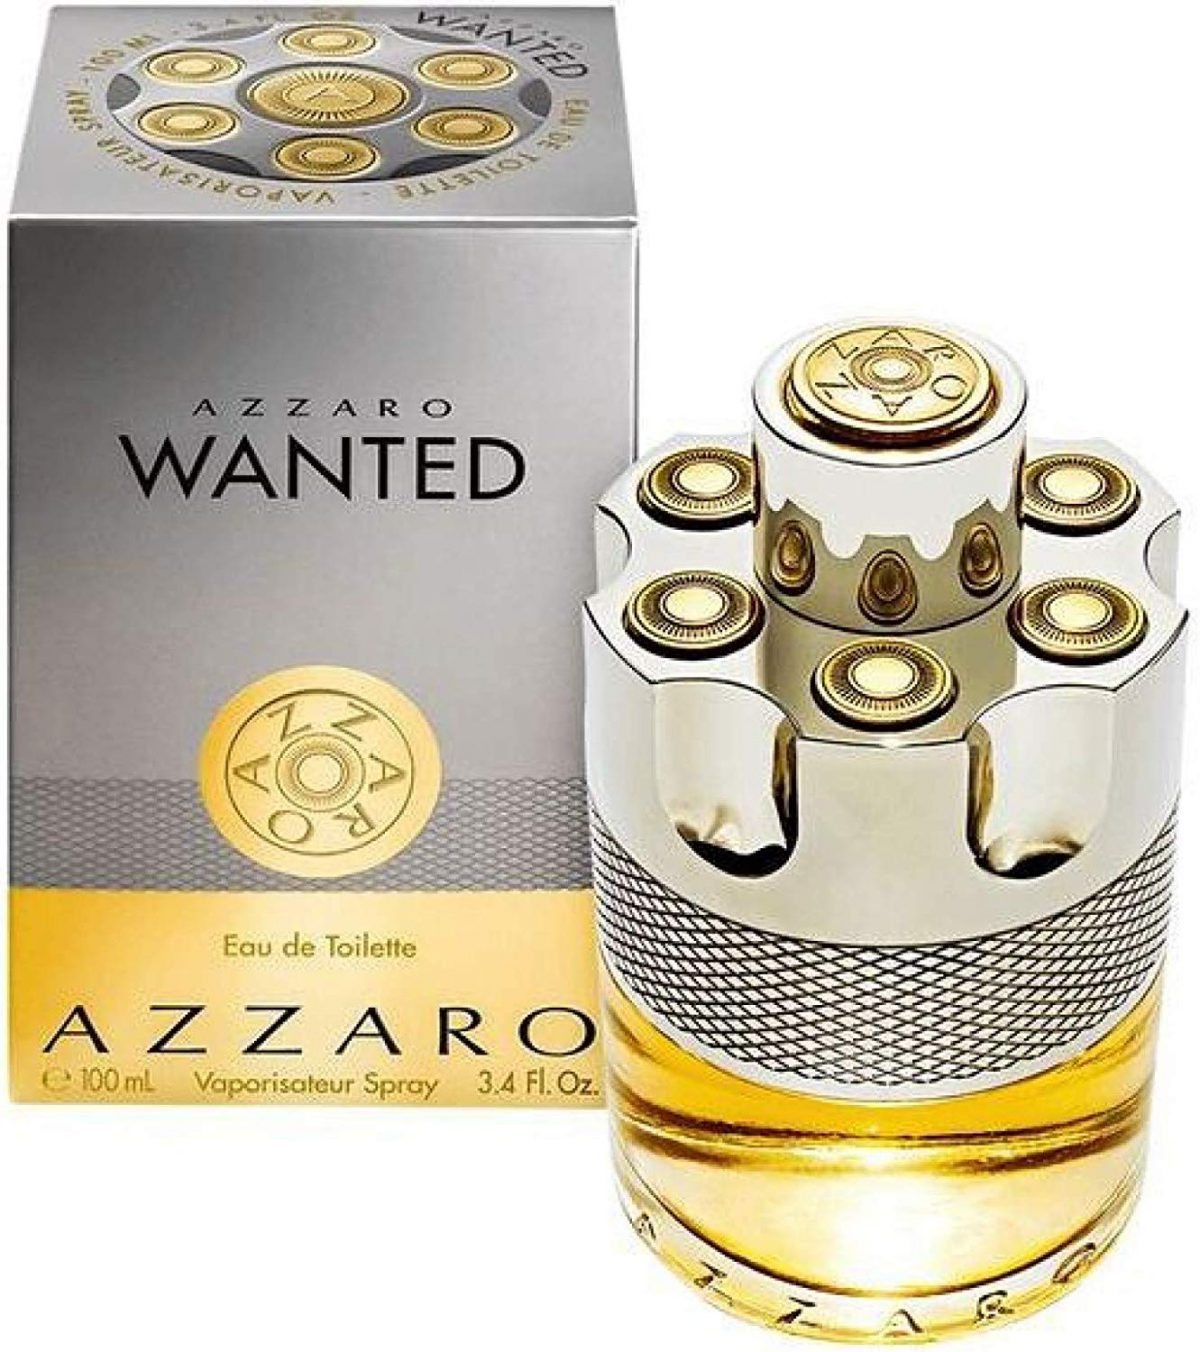 Wanted Azzaro